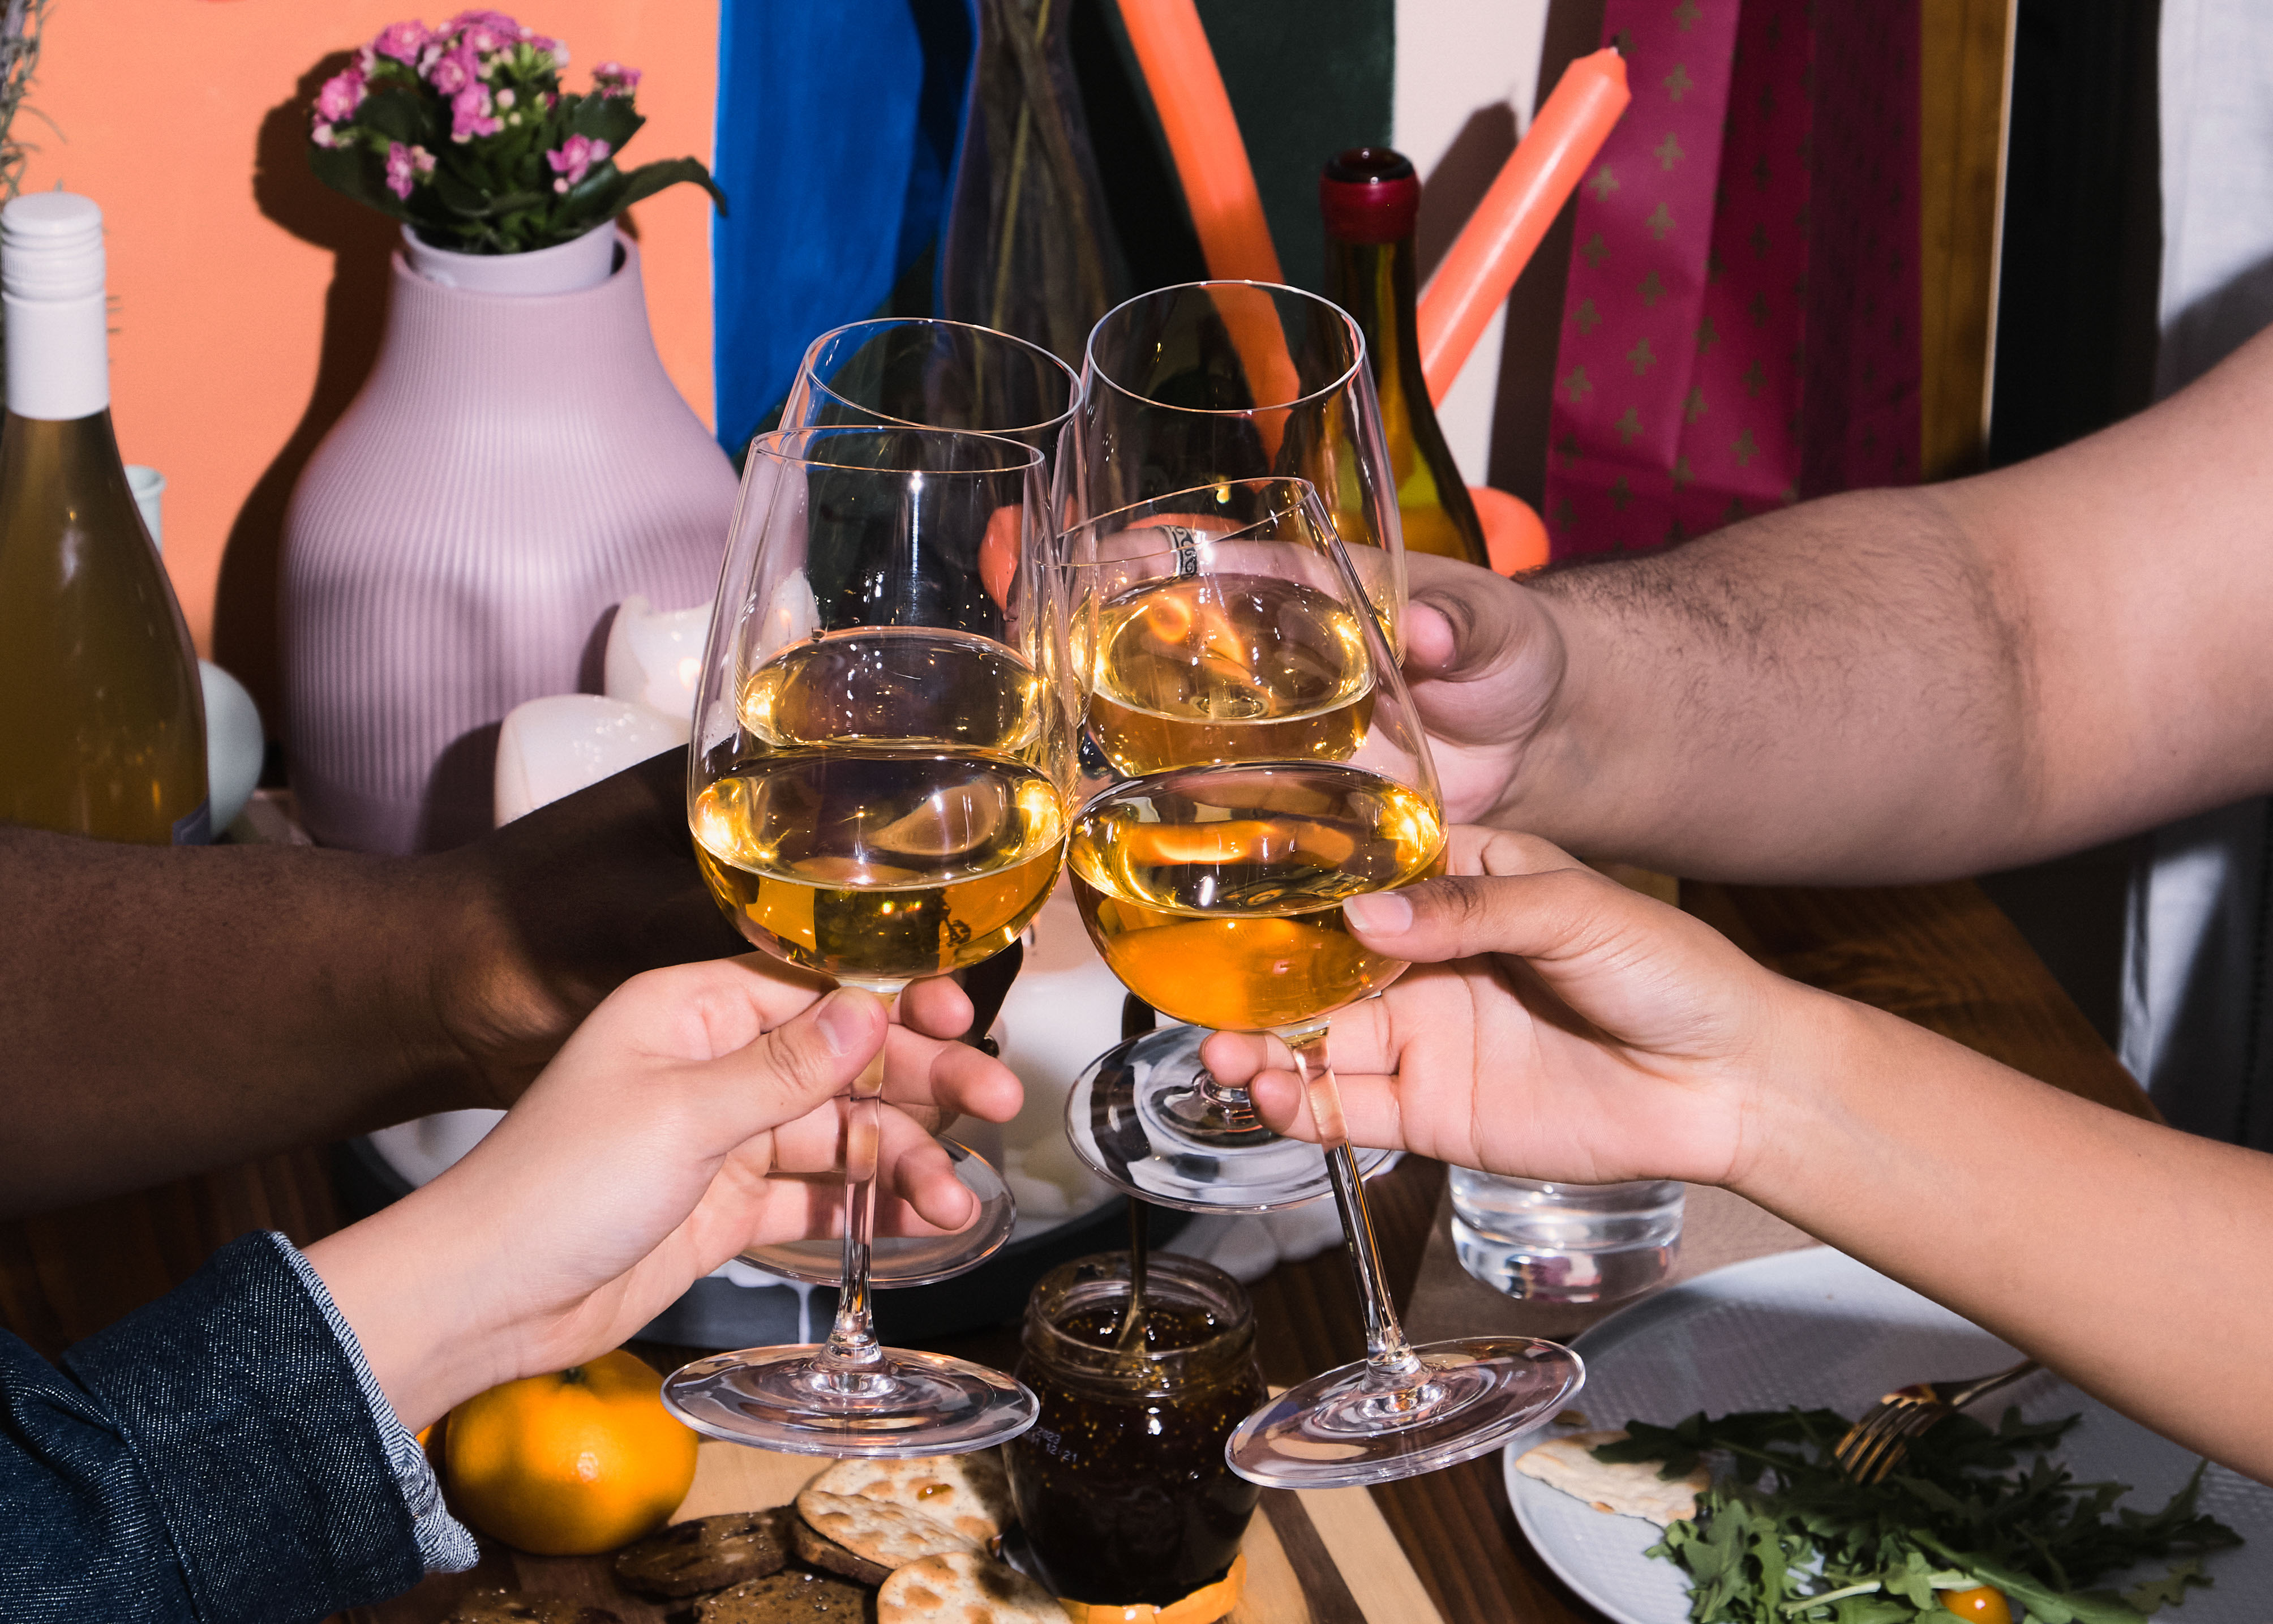 A group of friends of varying genders celebrating at a dinner party(1)